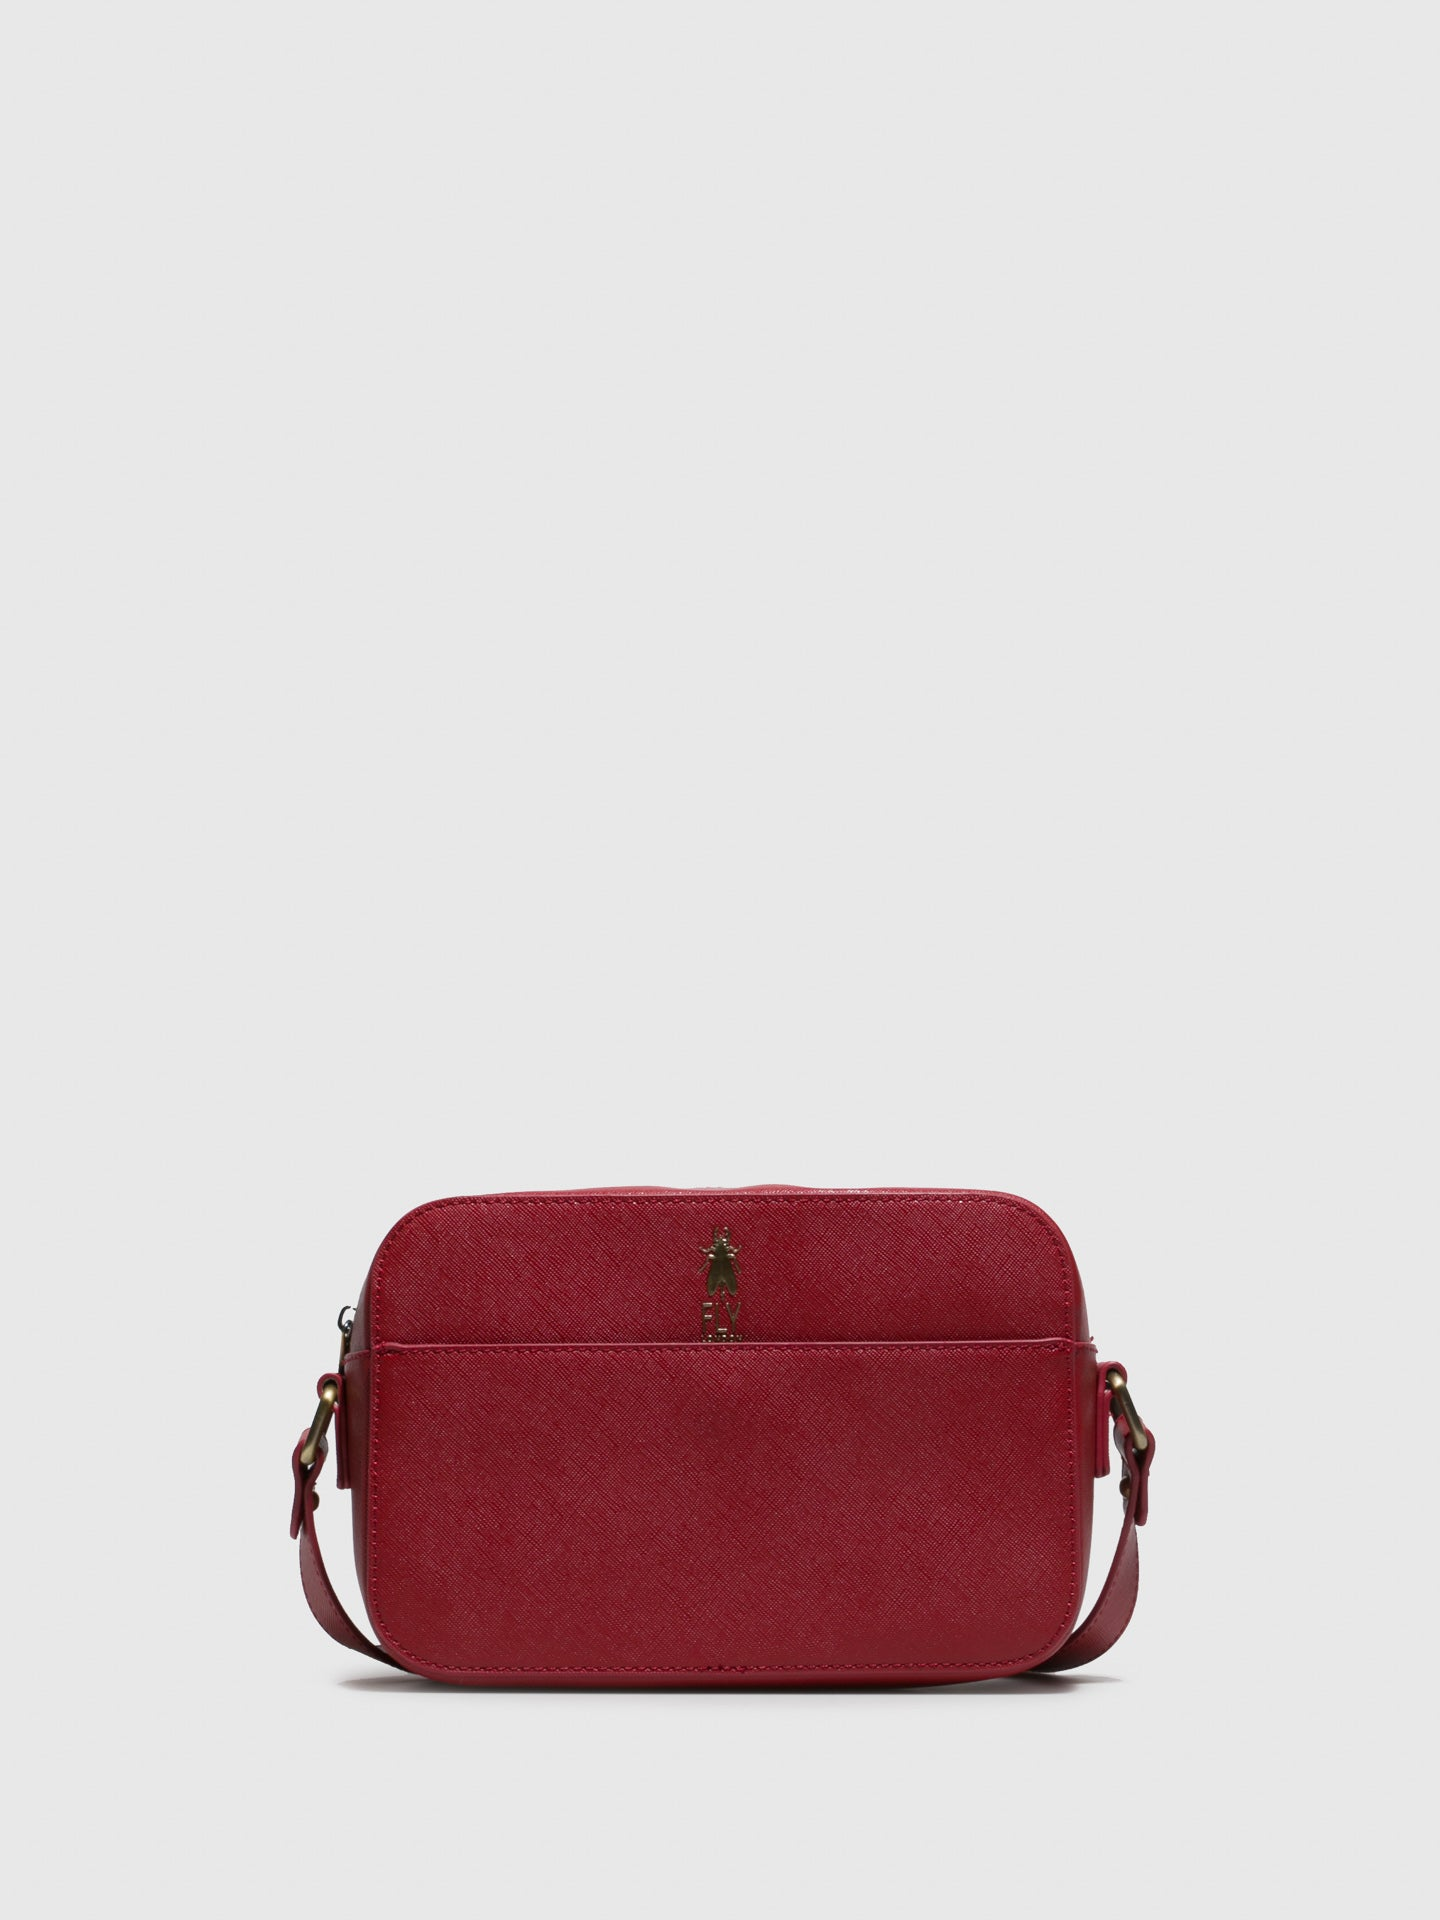 Fly London Shoulder Bags ARES692FLY PHOBOS DK RED